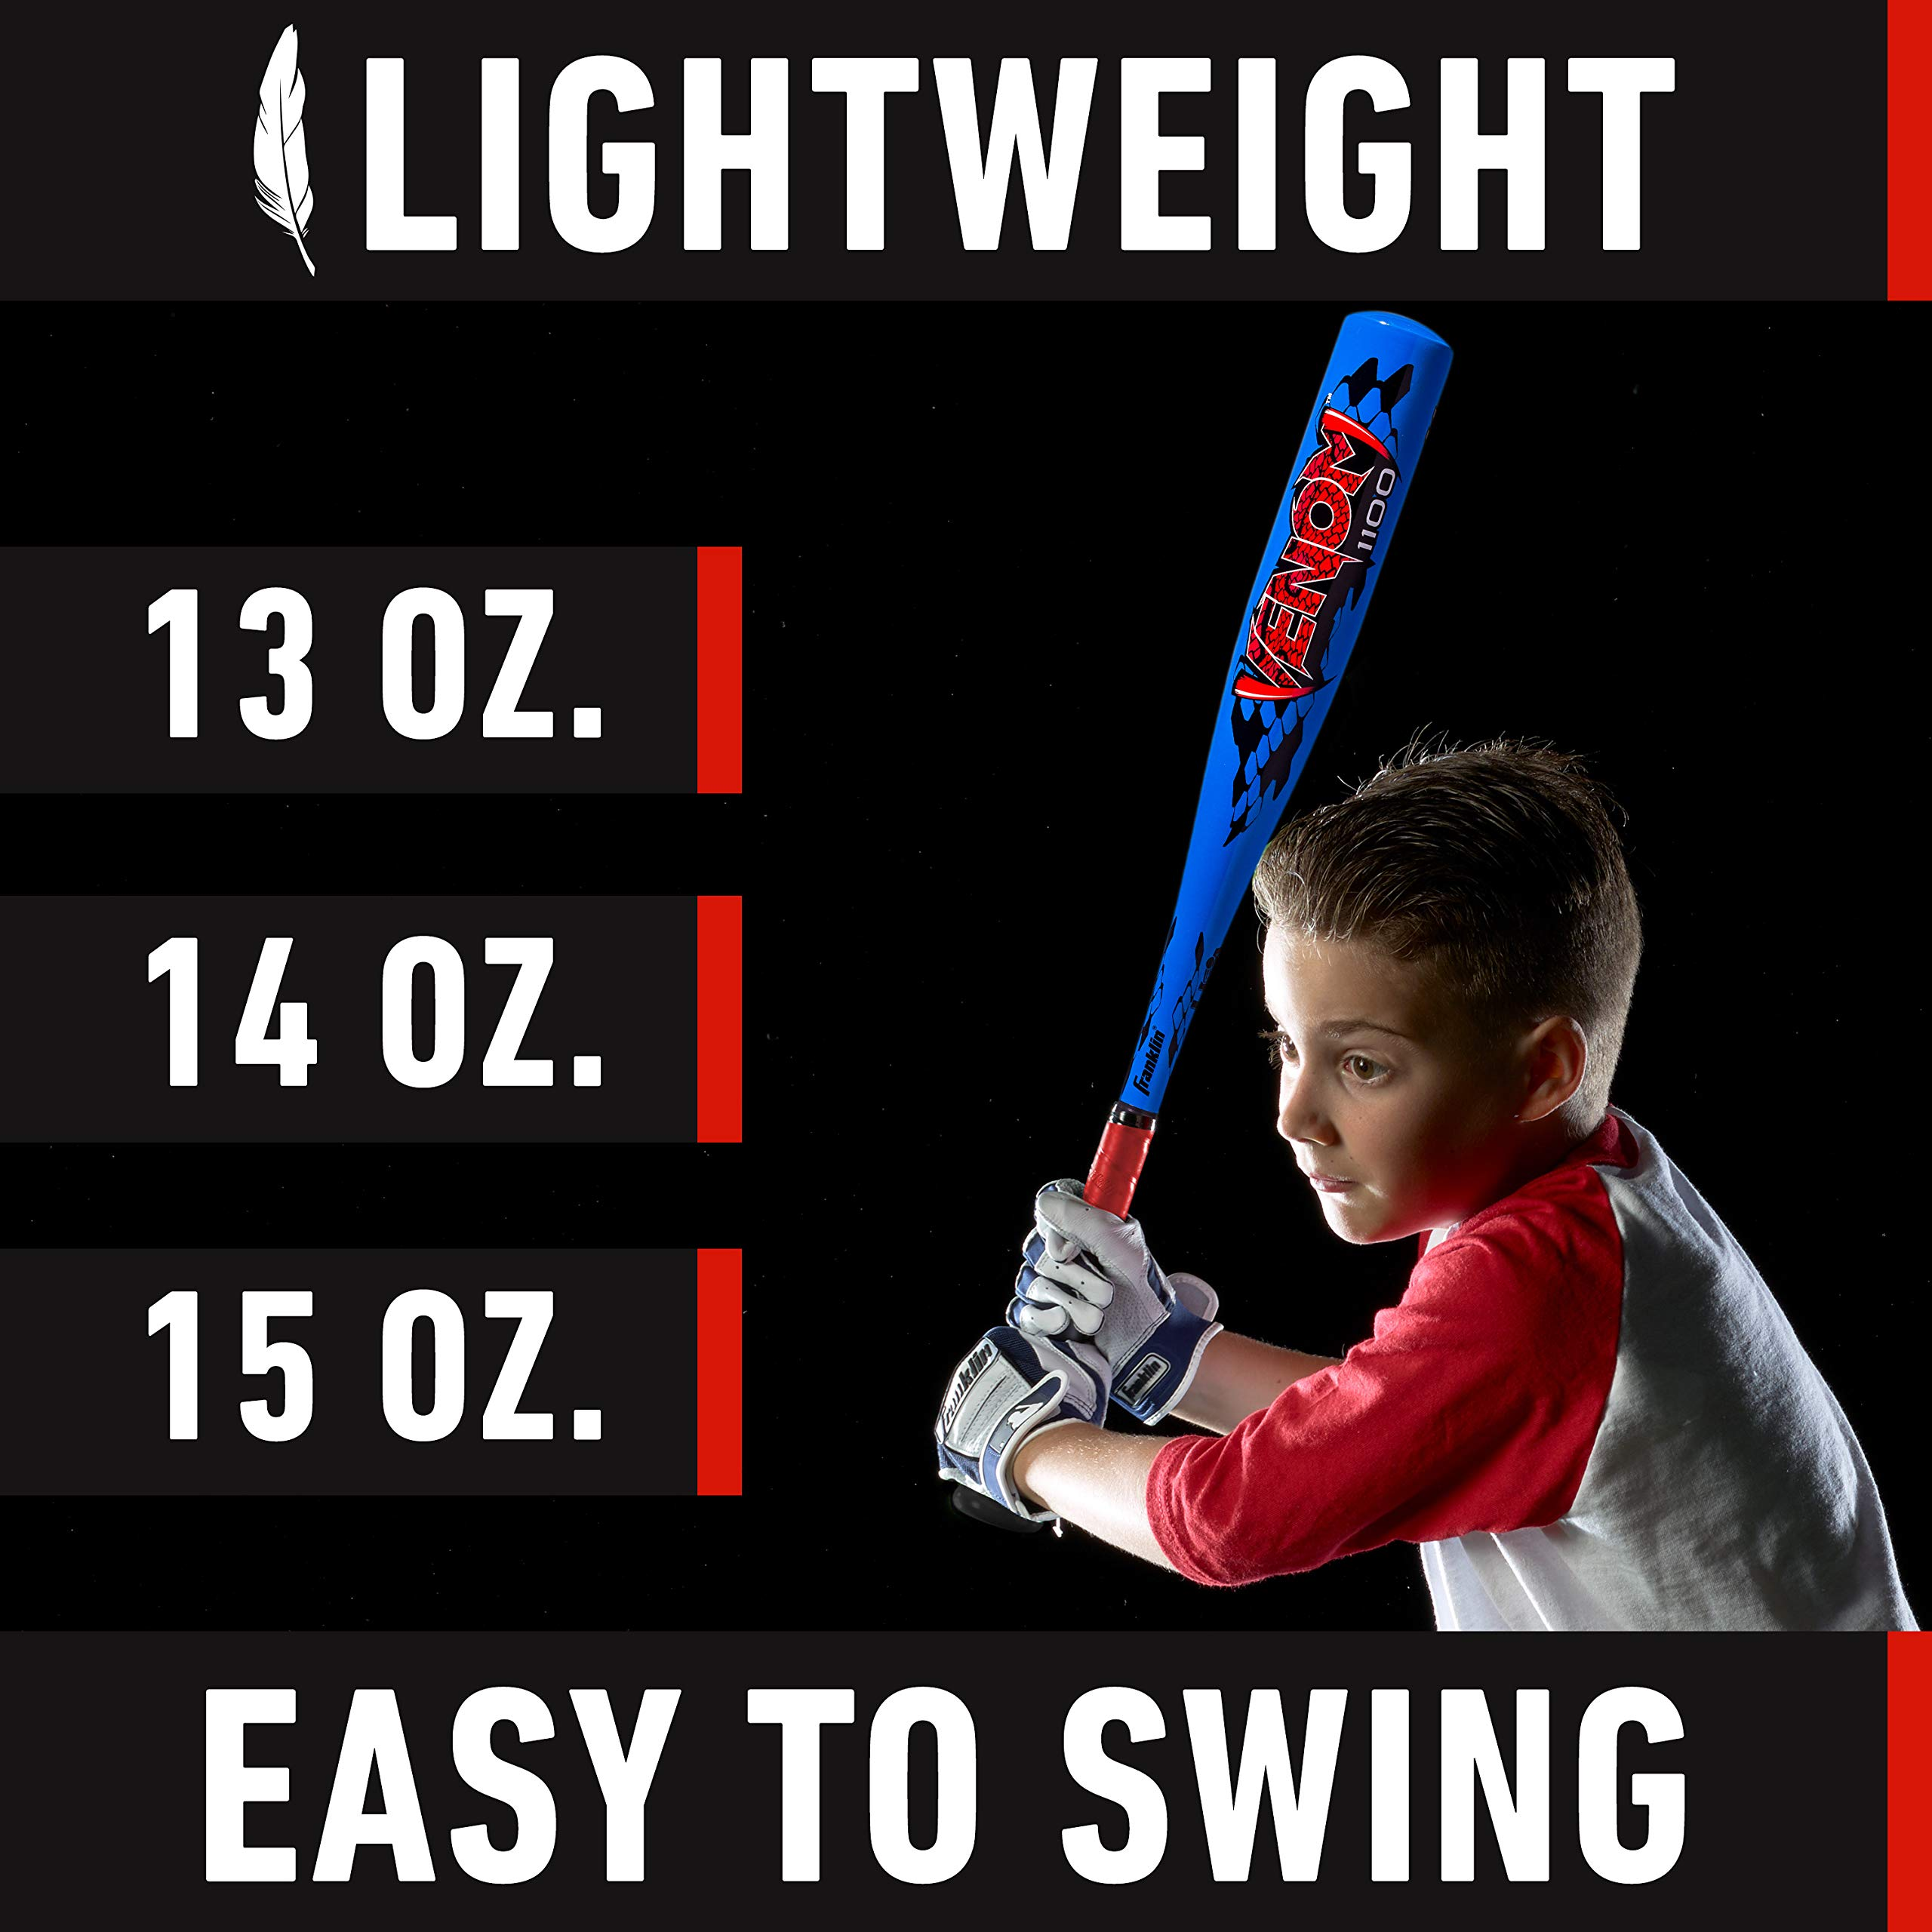 Franklin Sports Venom 1100 Official Teeball Bat - 25'' (-11) - Perfect for Youth Baseball and Teeball by Franklin Sports (Image #7)